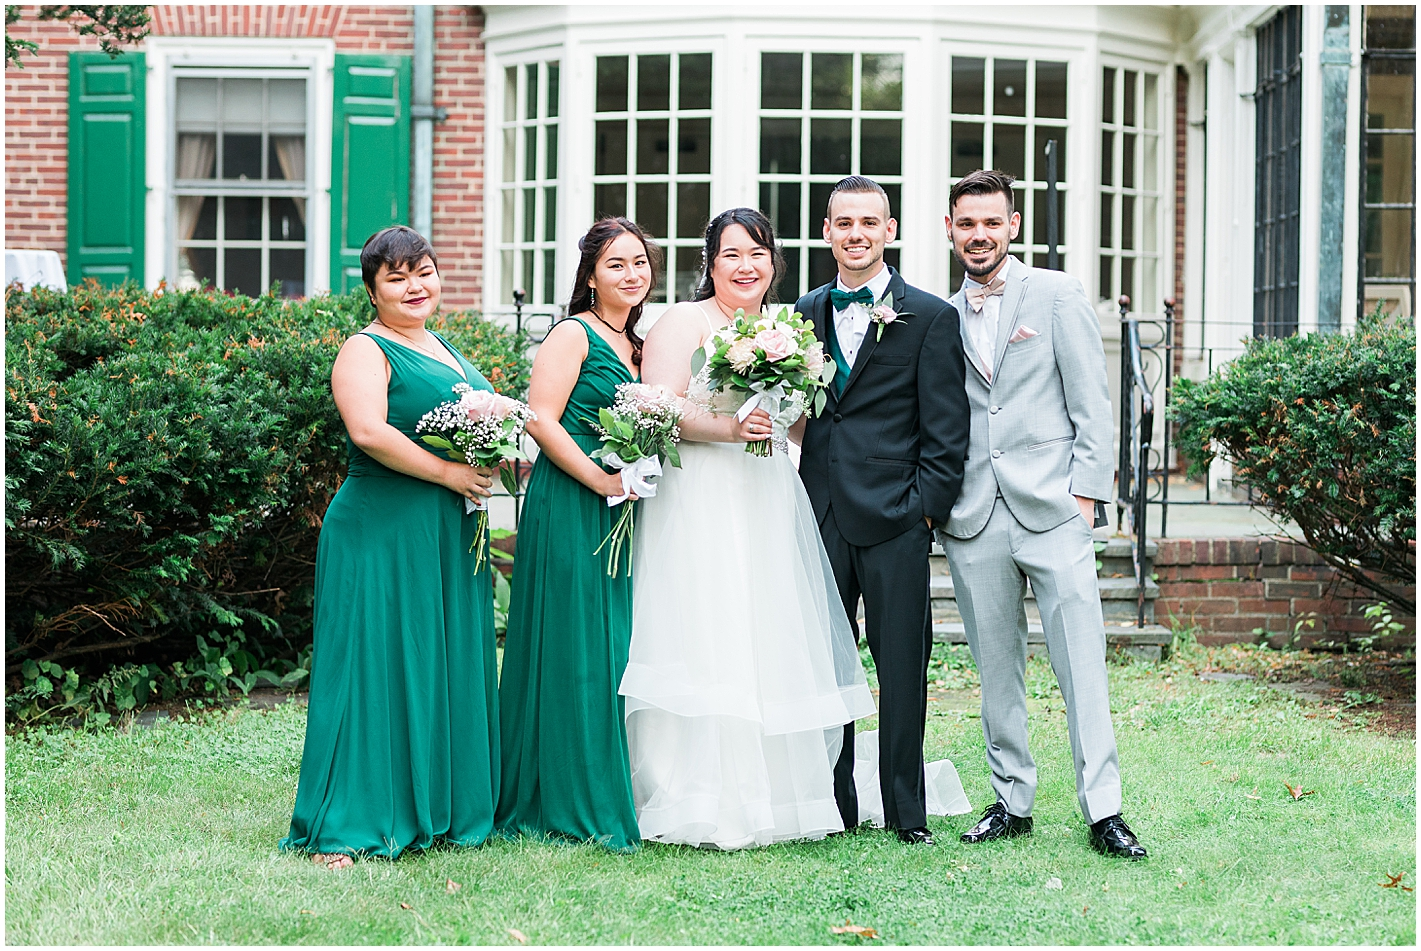 Family Formals at Governors Inn Photos by Alyssa Parker Photography